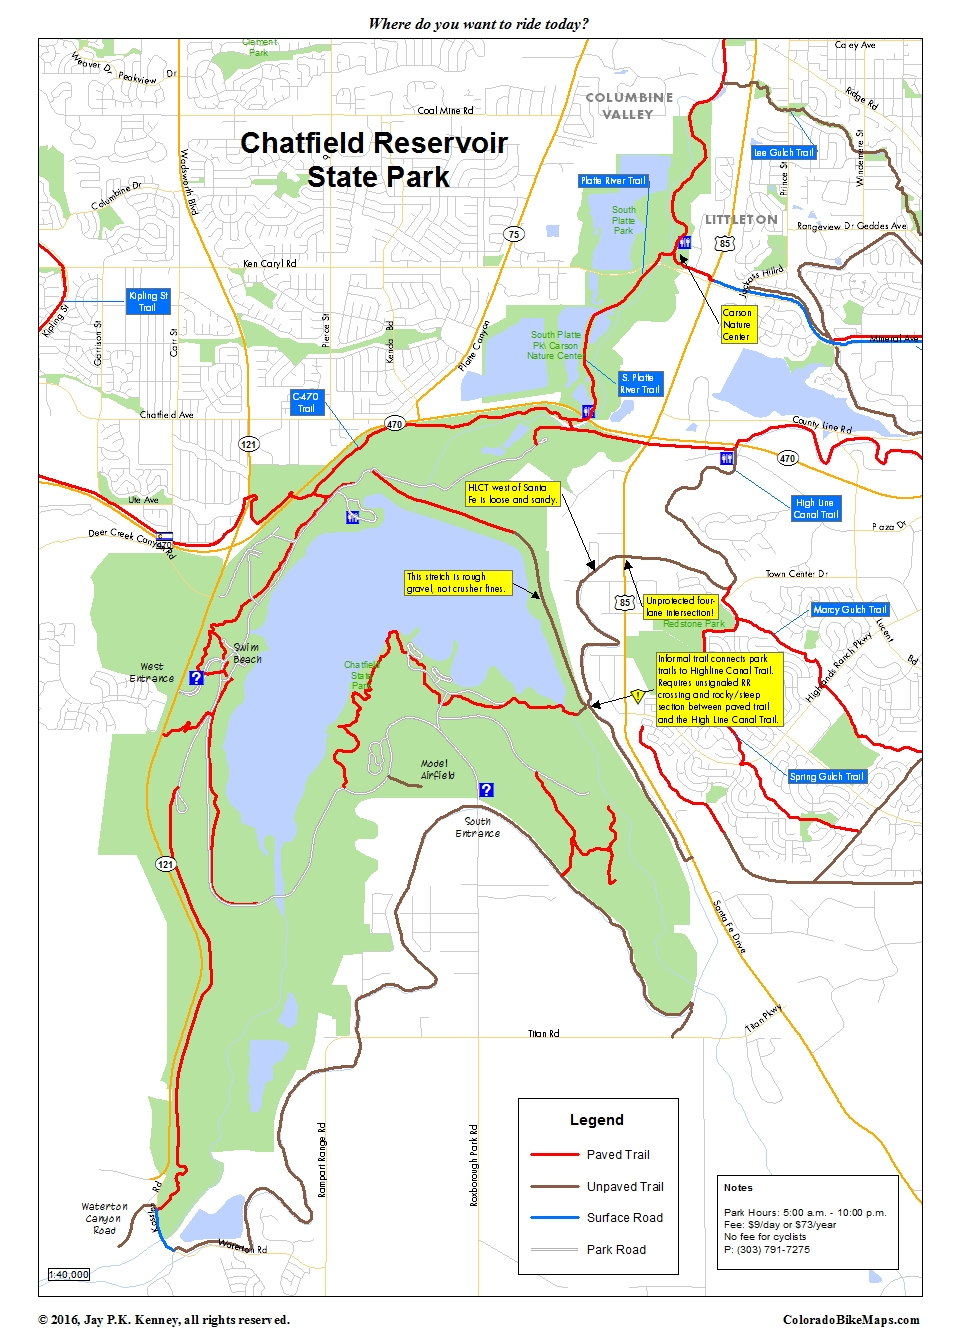 Cherry Creek Trail coloradobikemaps